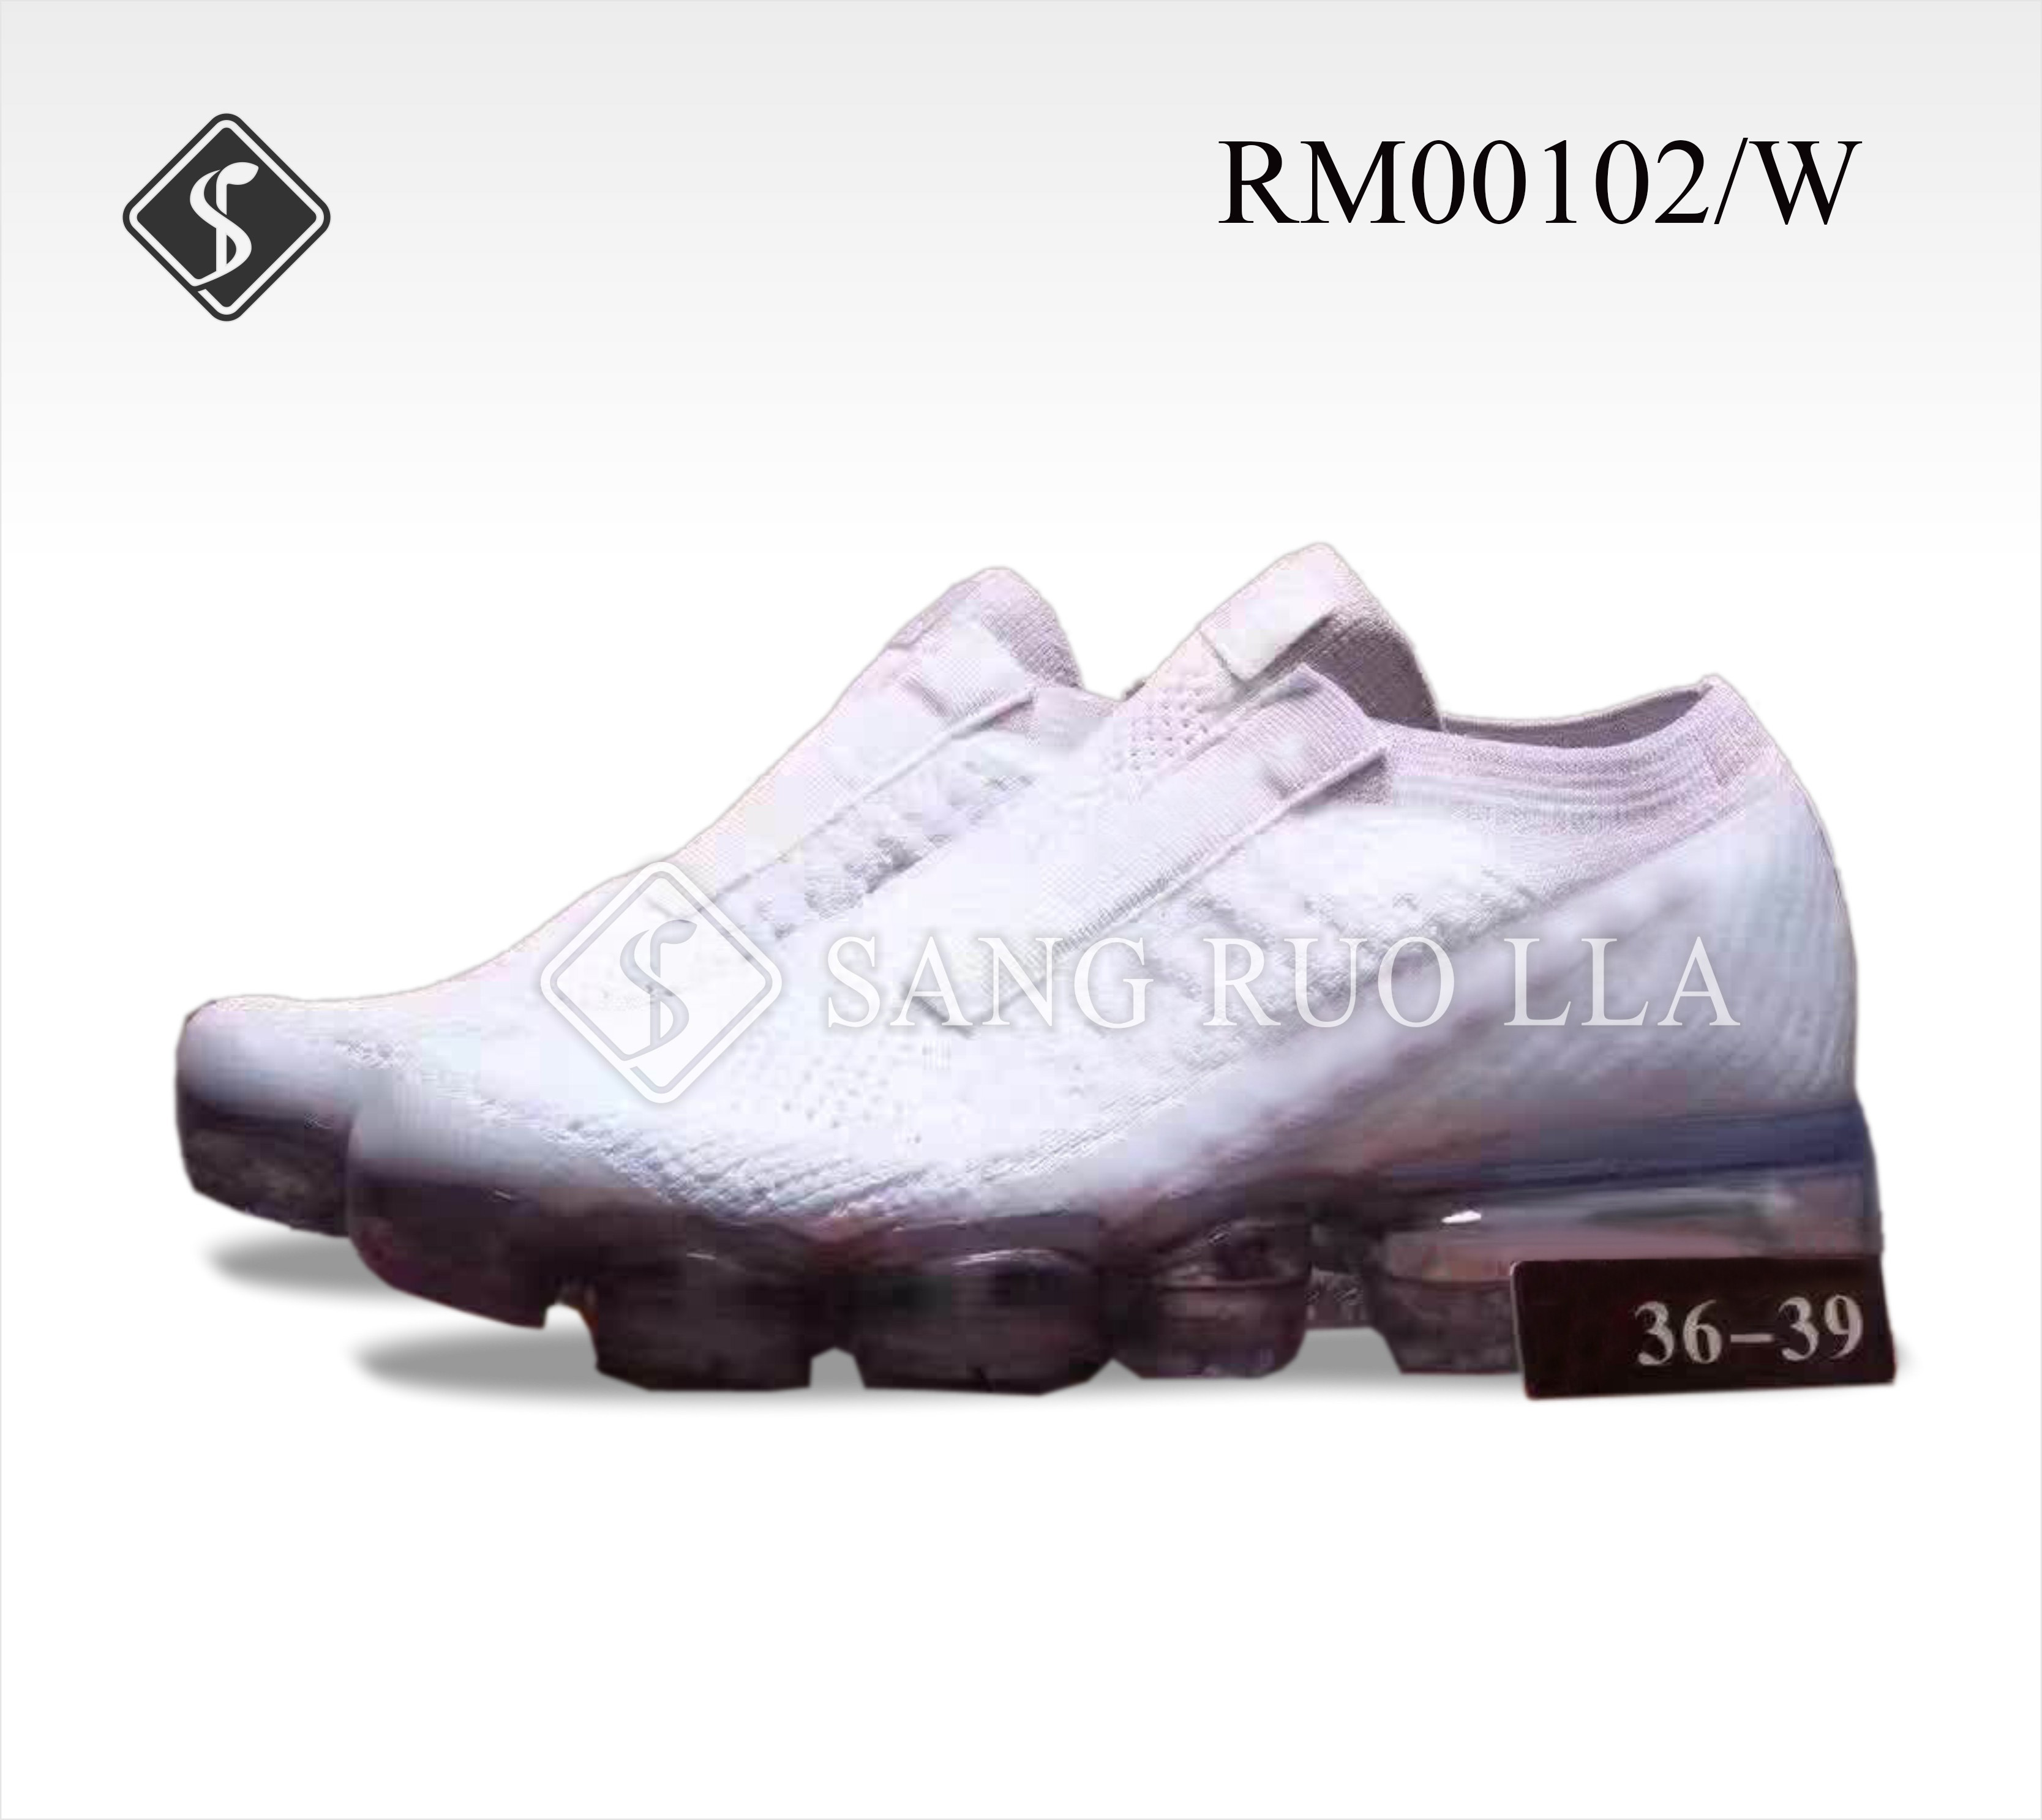 Running Shoes with Flykint, Sports Shoes, Sneaker Shoes, Comfortable Shoes,